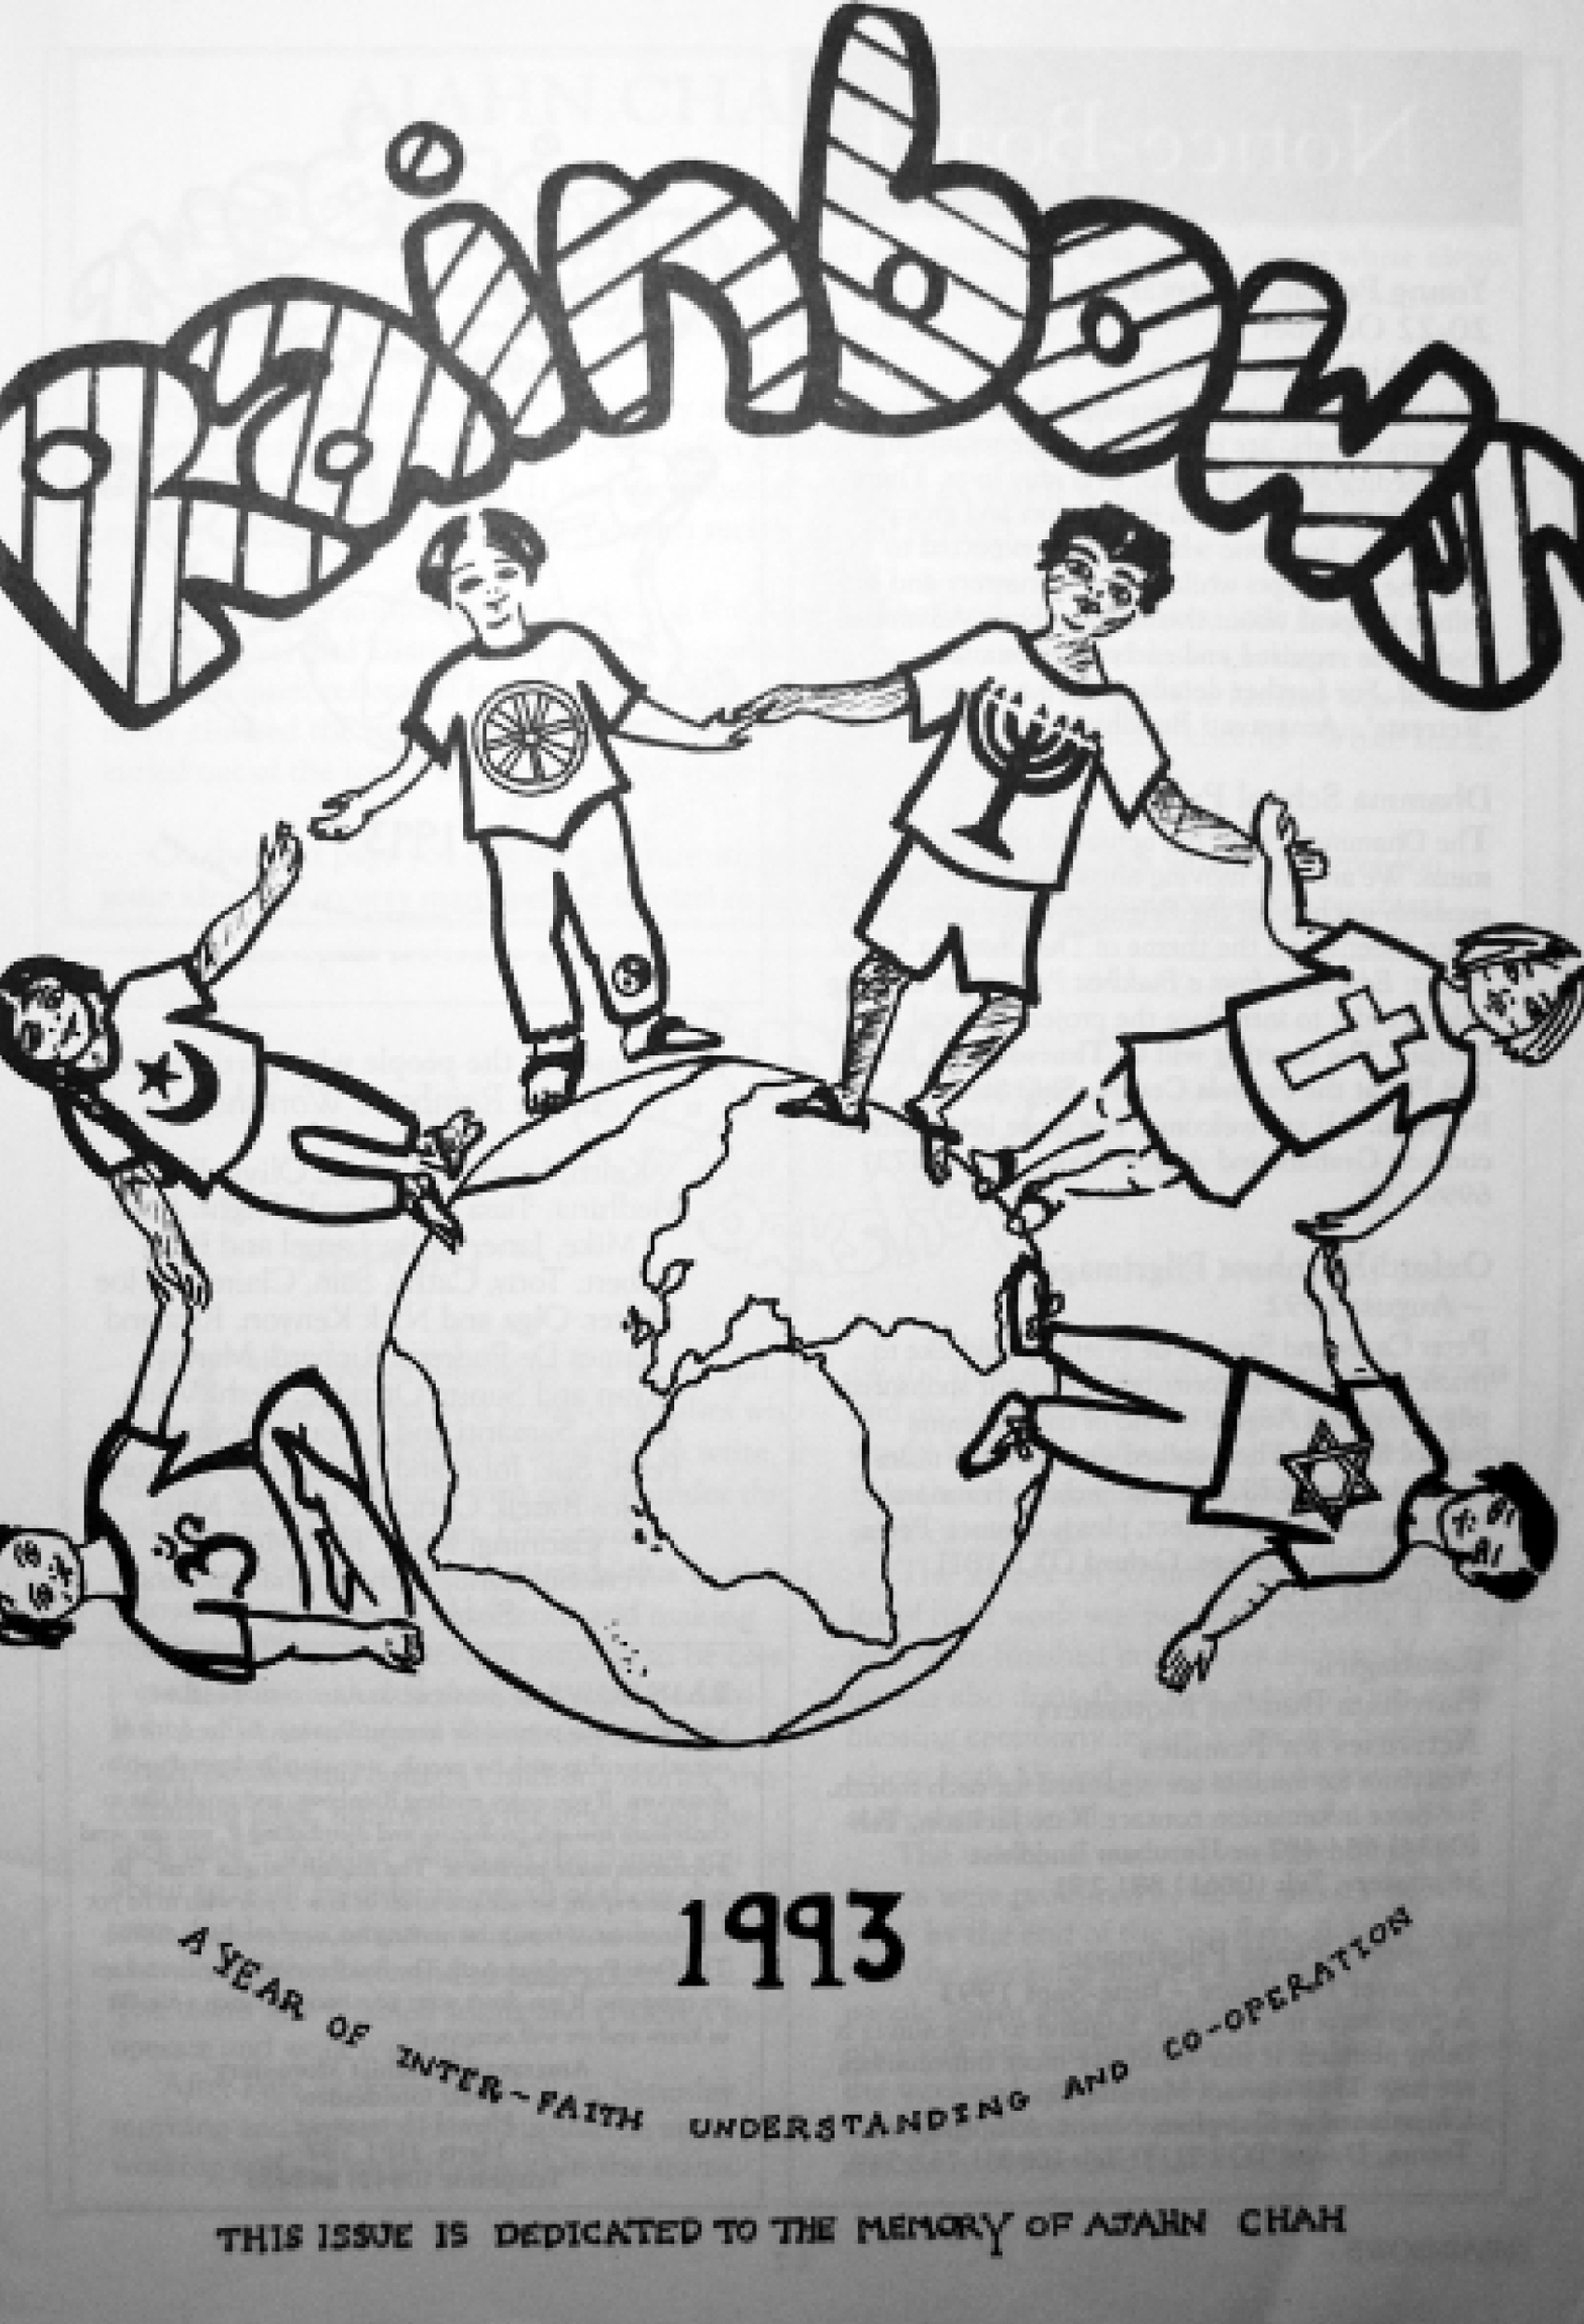 1993 front cover.jpg